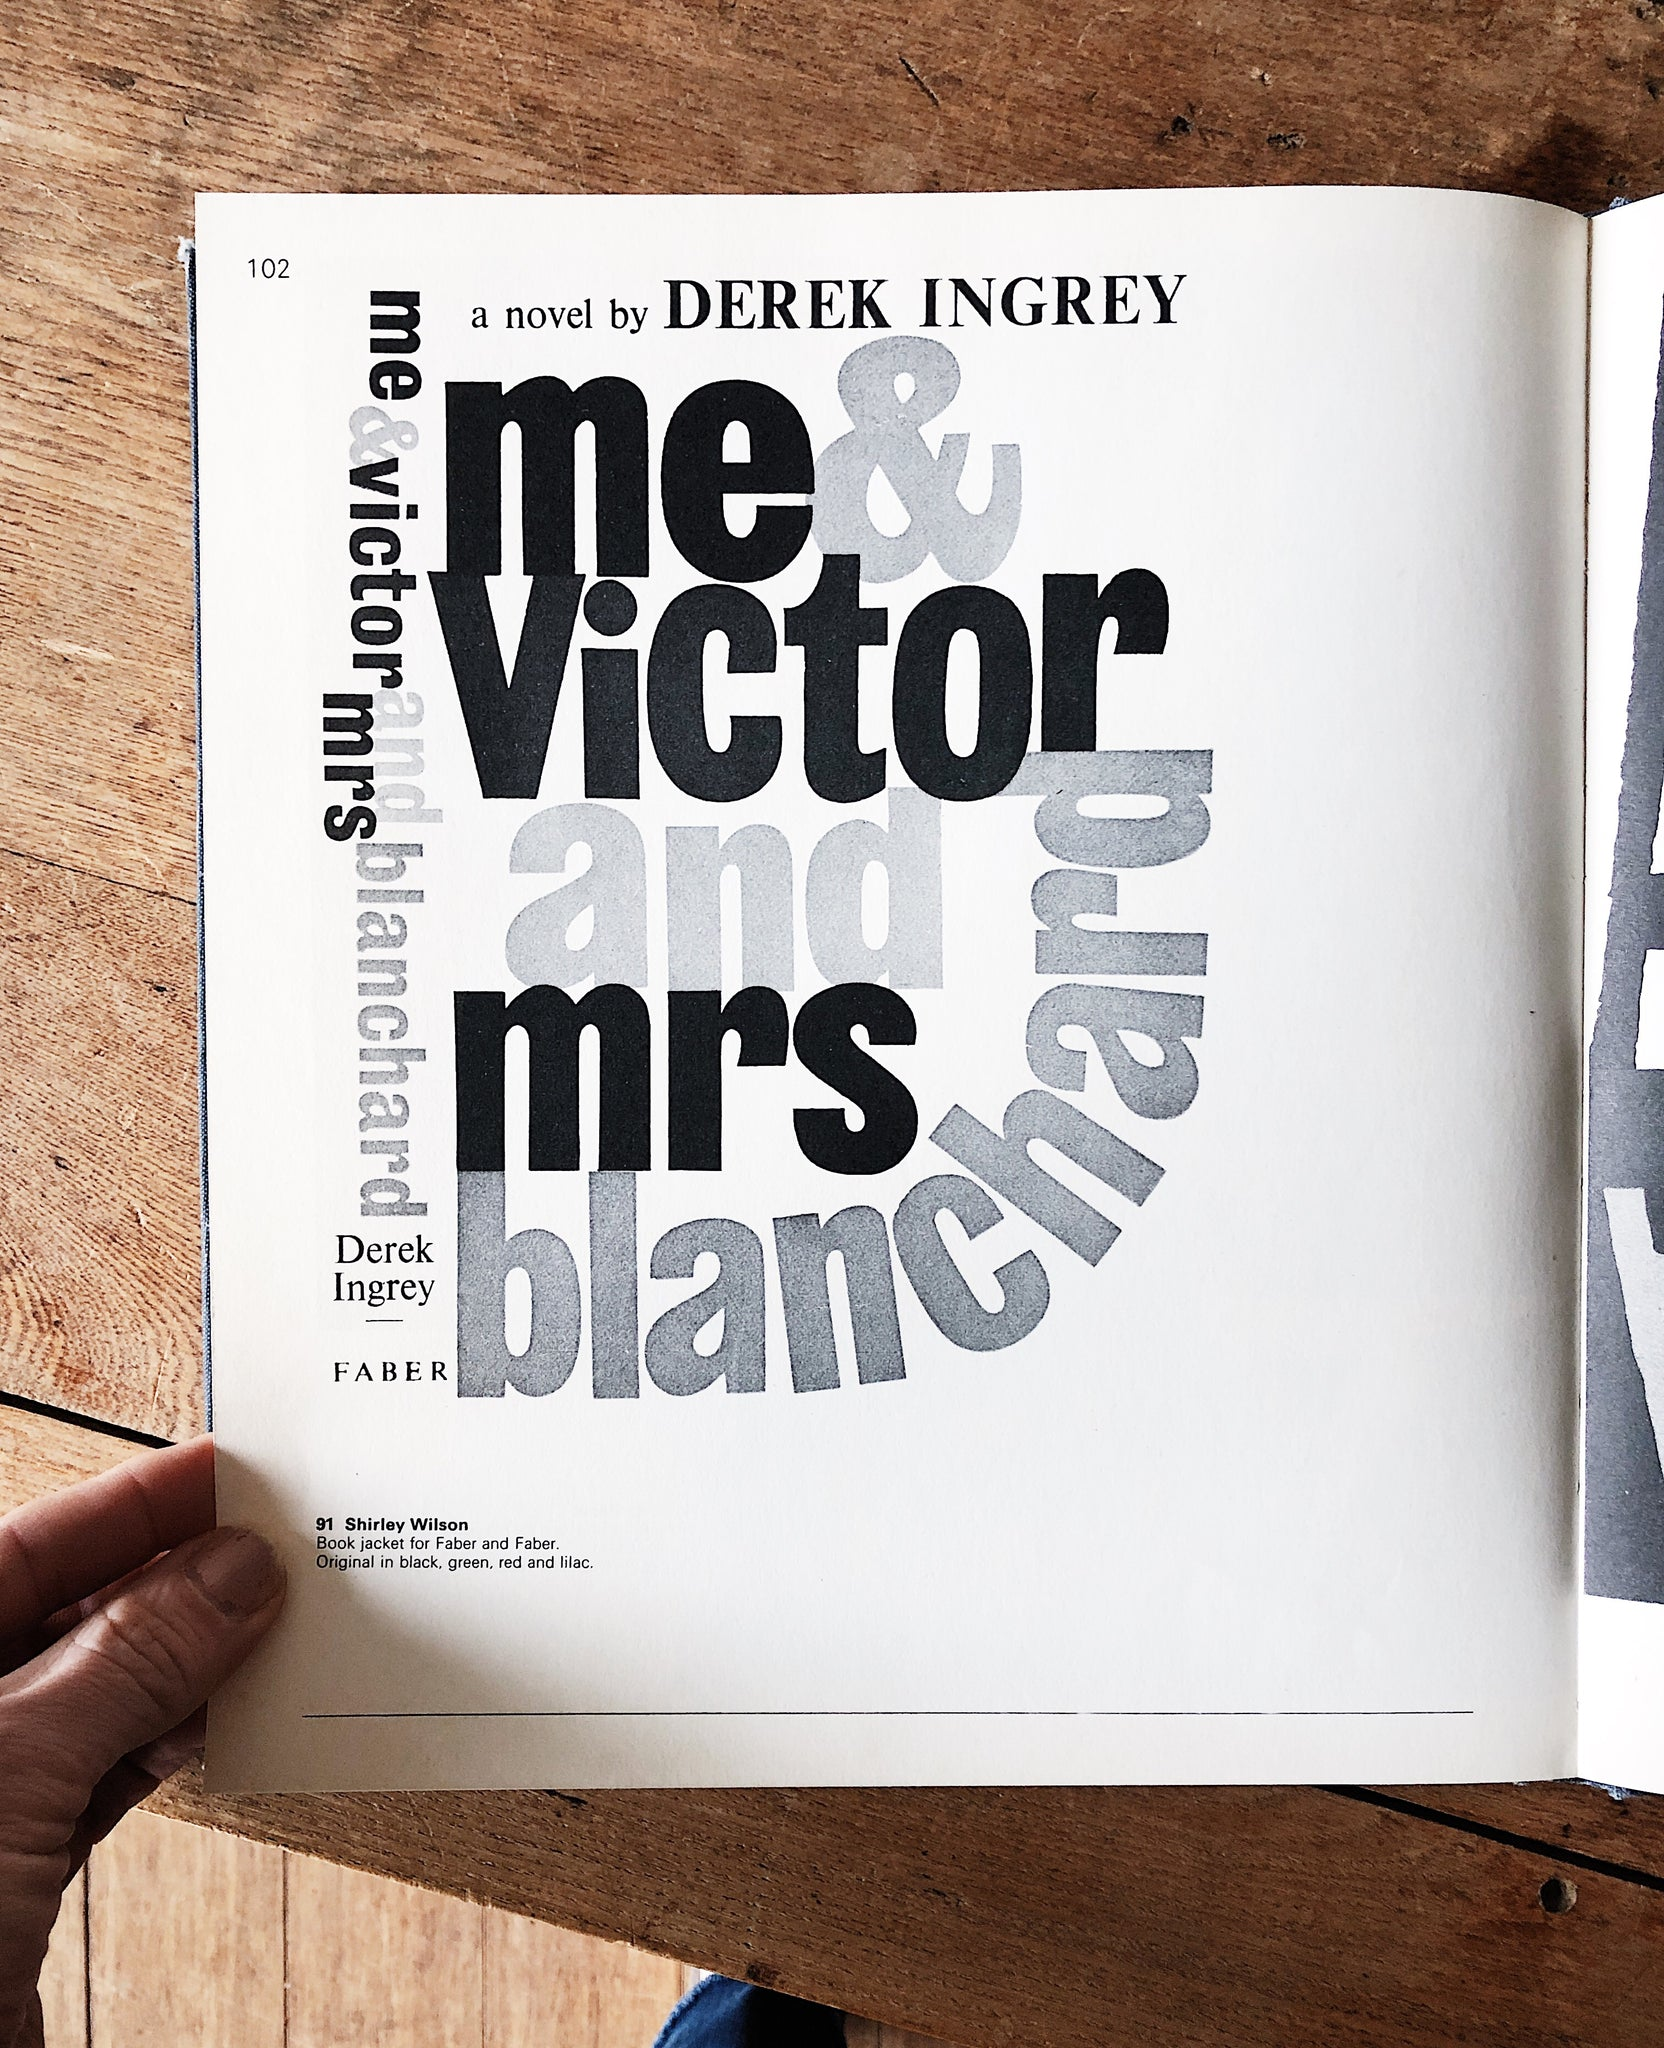 Vintage Lettering Today 1960s Font and Signage Book